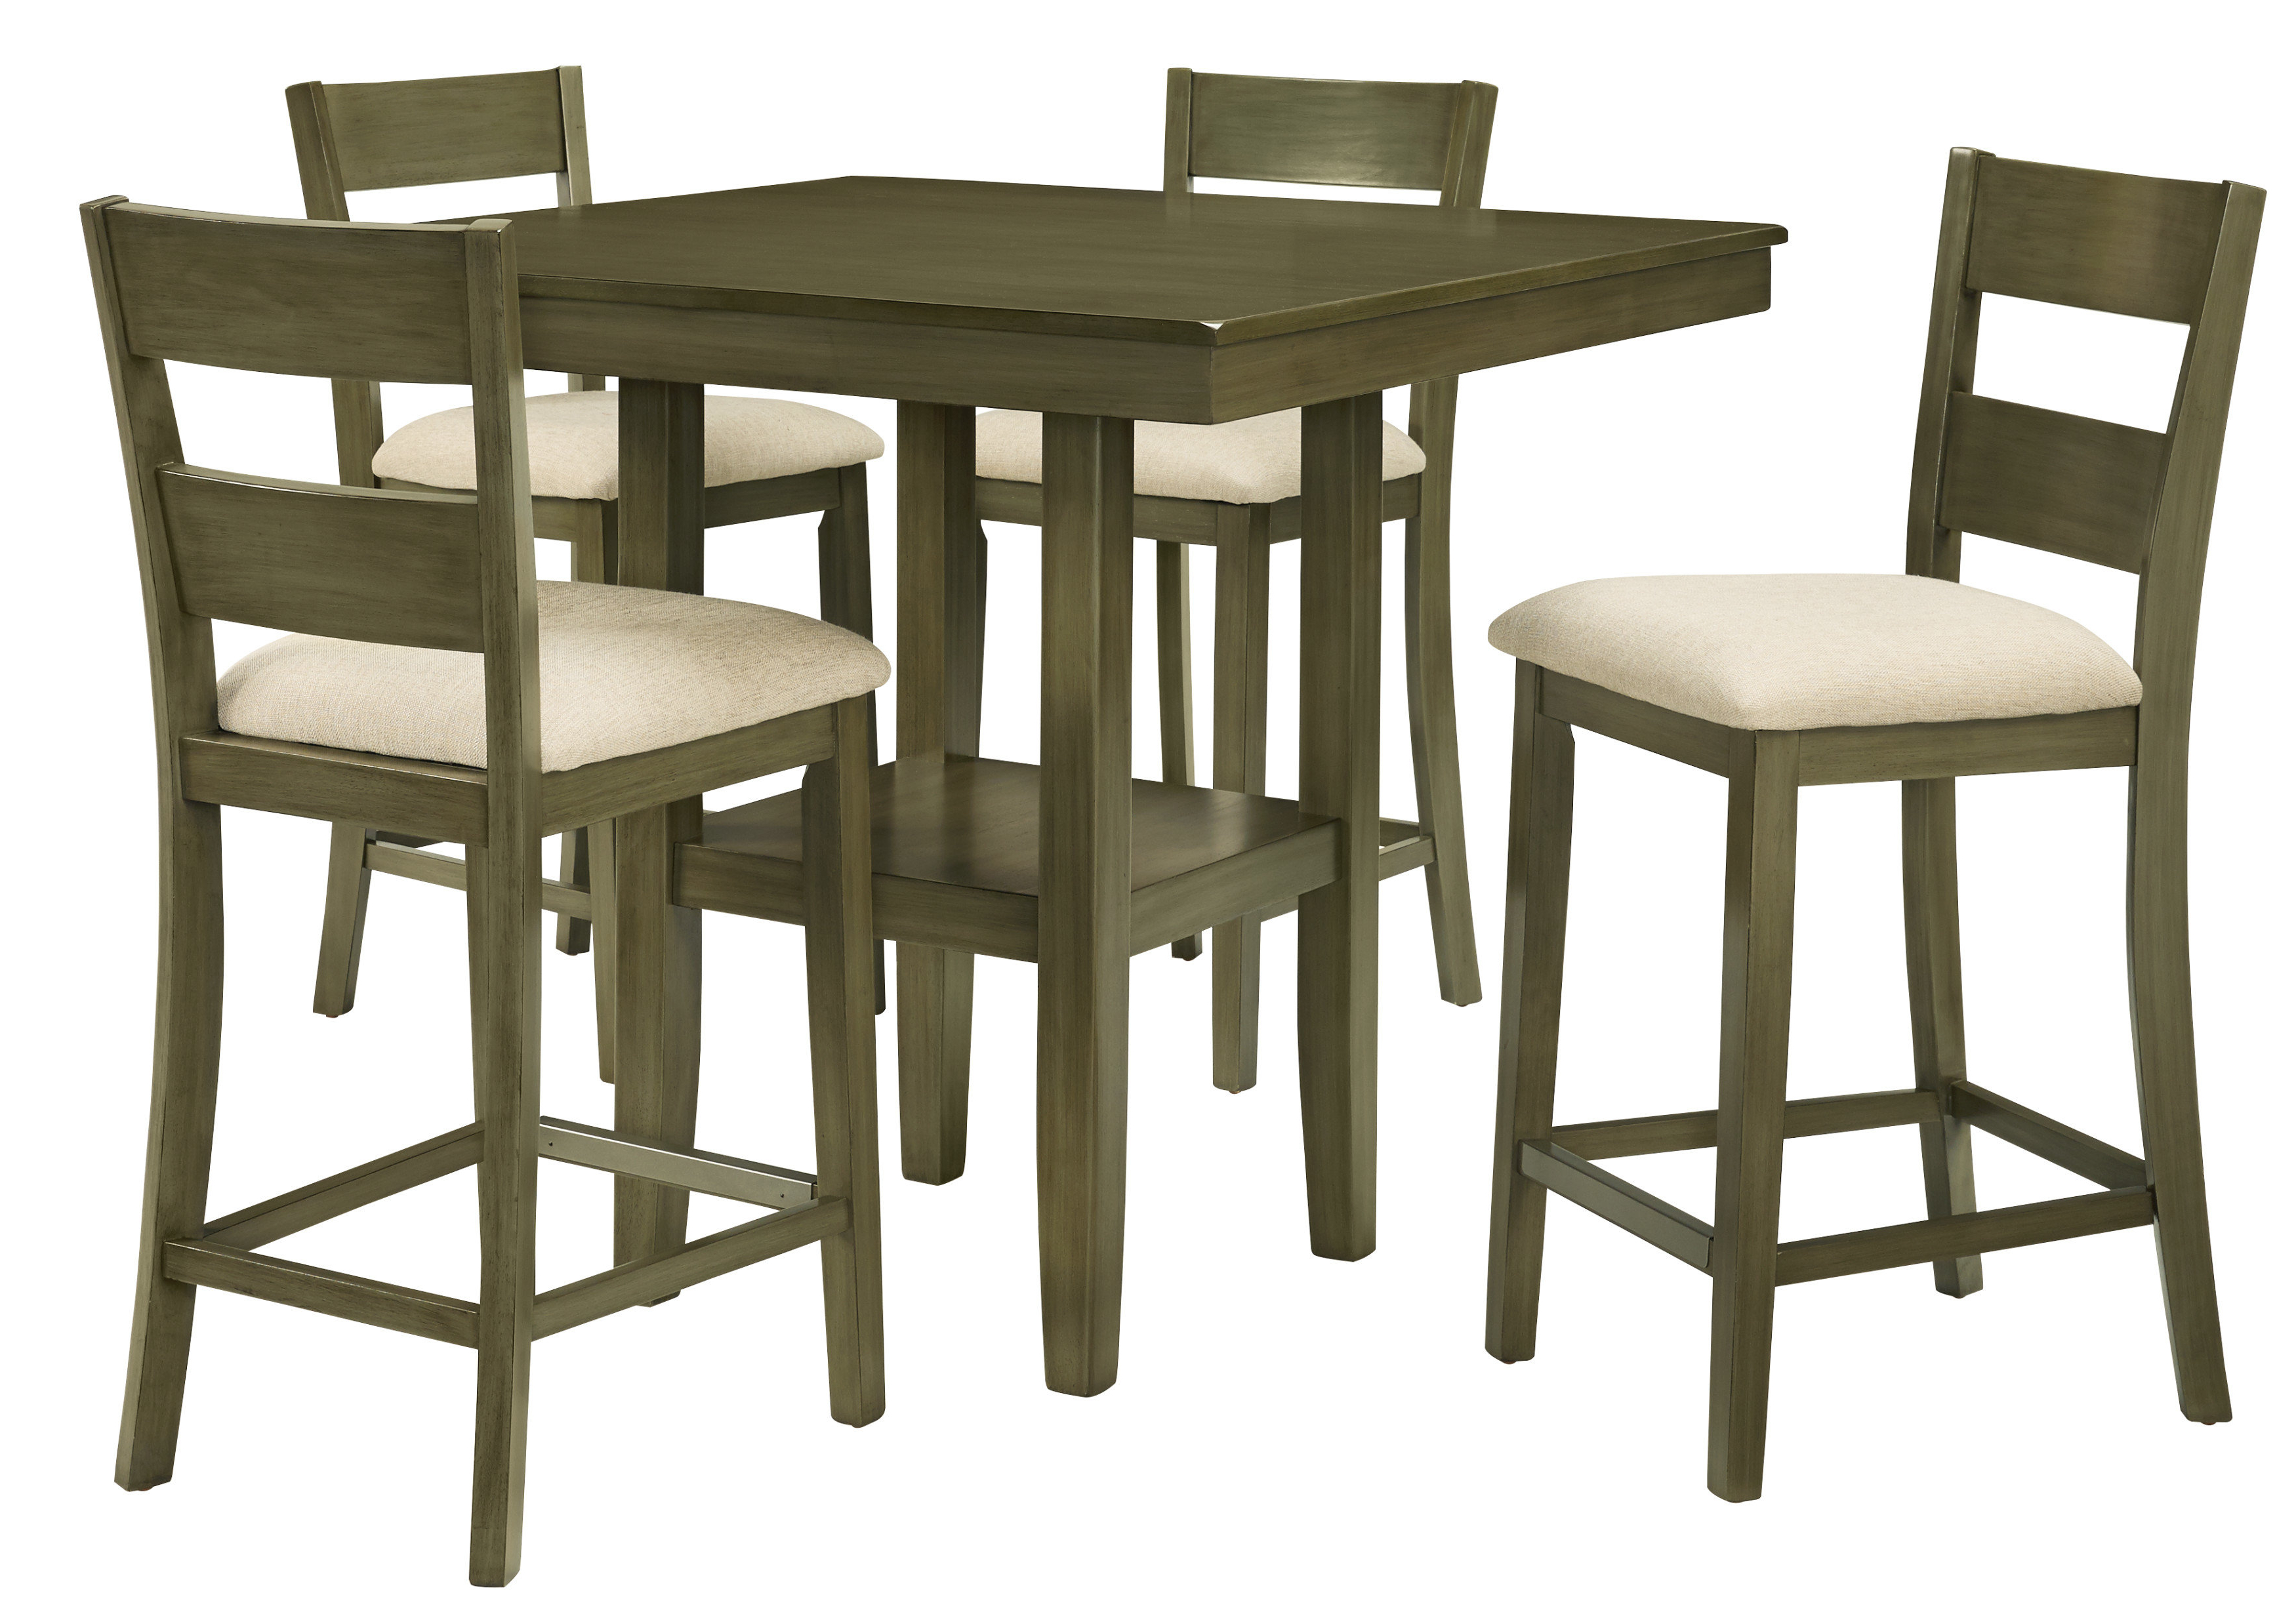 Joss & Main In Bettencourt 3 Piece Counter Height Solid Wood Dining Sets (Gallery 10 of 25)